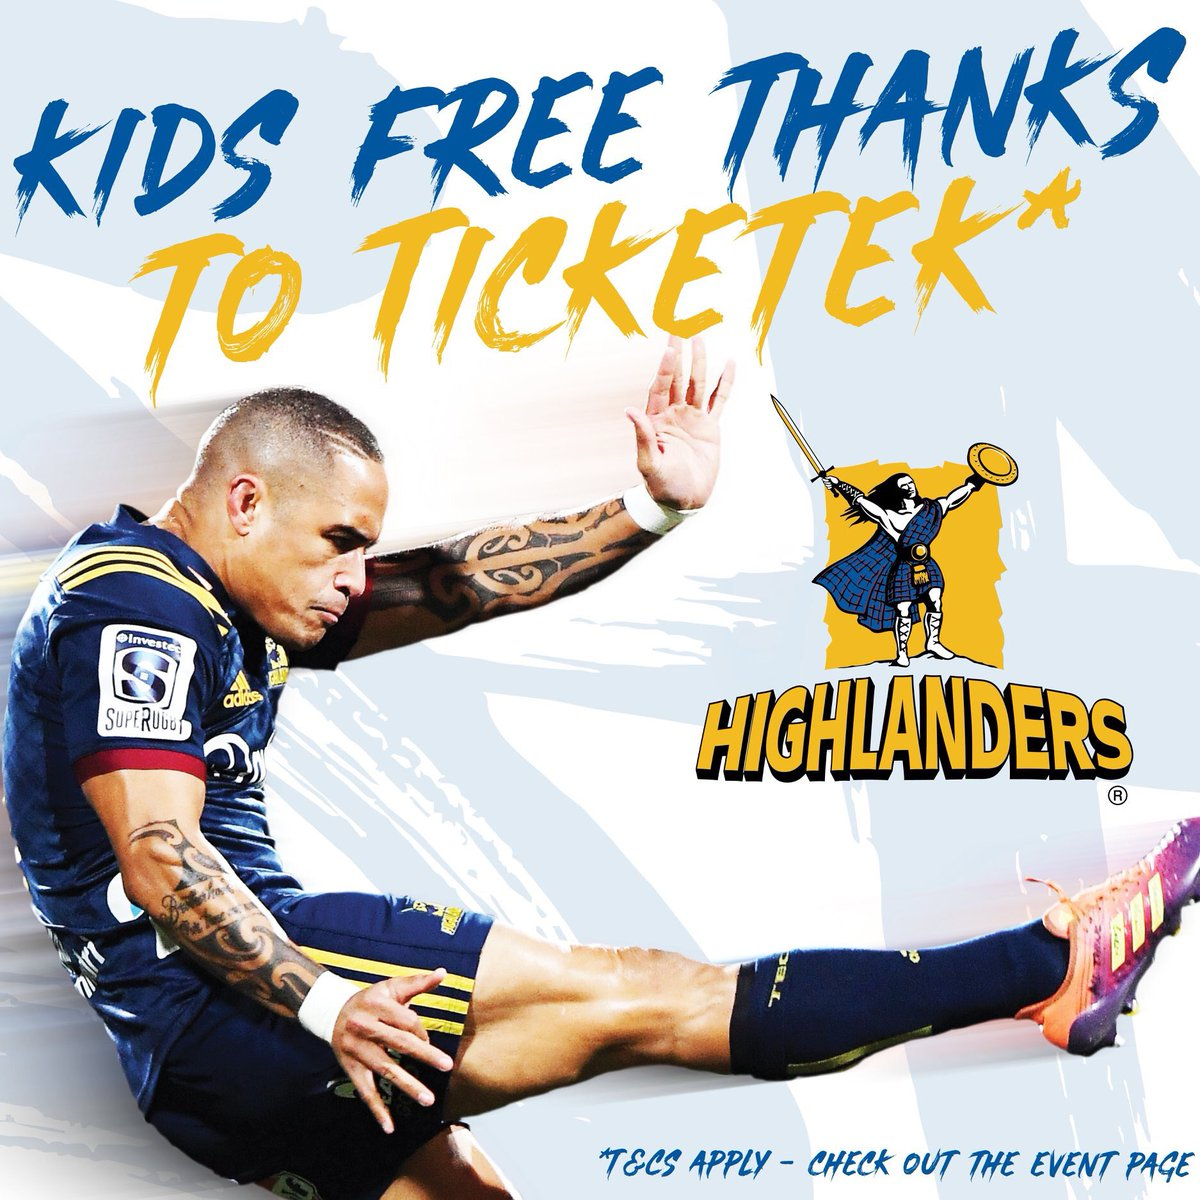 We're on the move to @Ticketek_NZ and to celebrate kids can come to the Highlanders v Lions game for FREE! T&Cs apply - full info: thehighlanders.co.nz/media-centre/n…